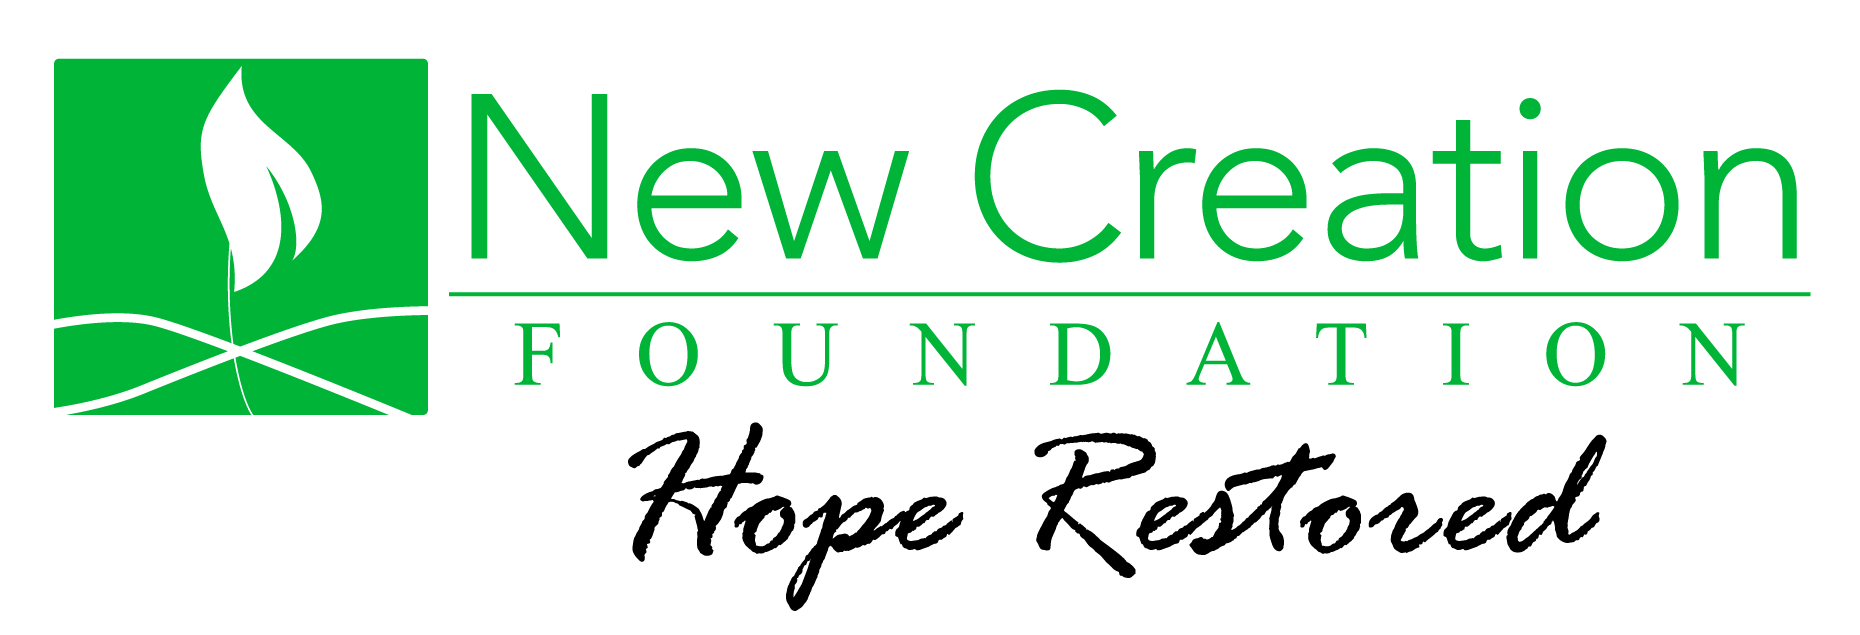 New Creation Foundation